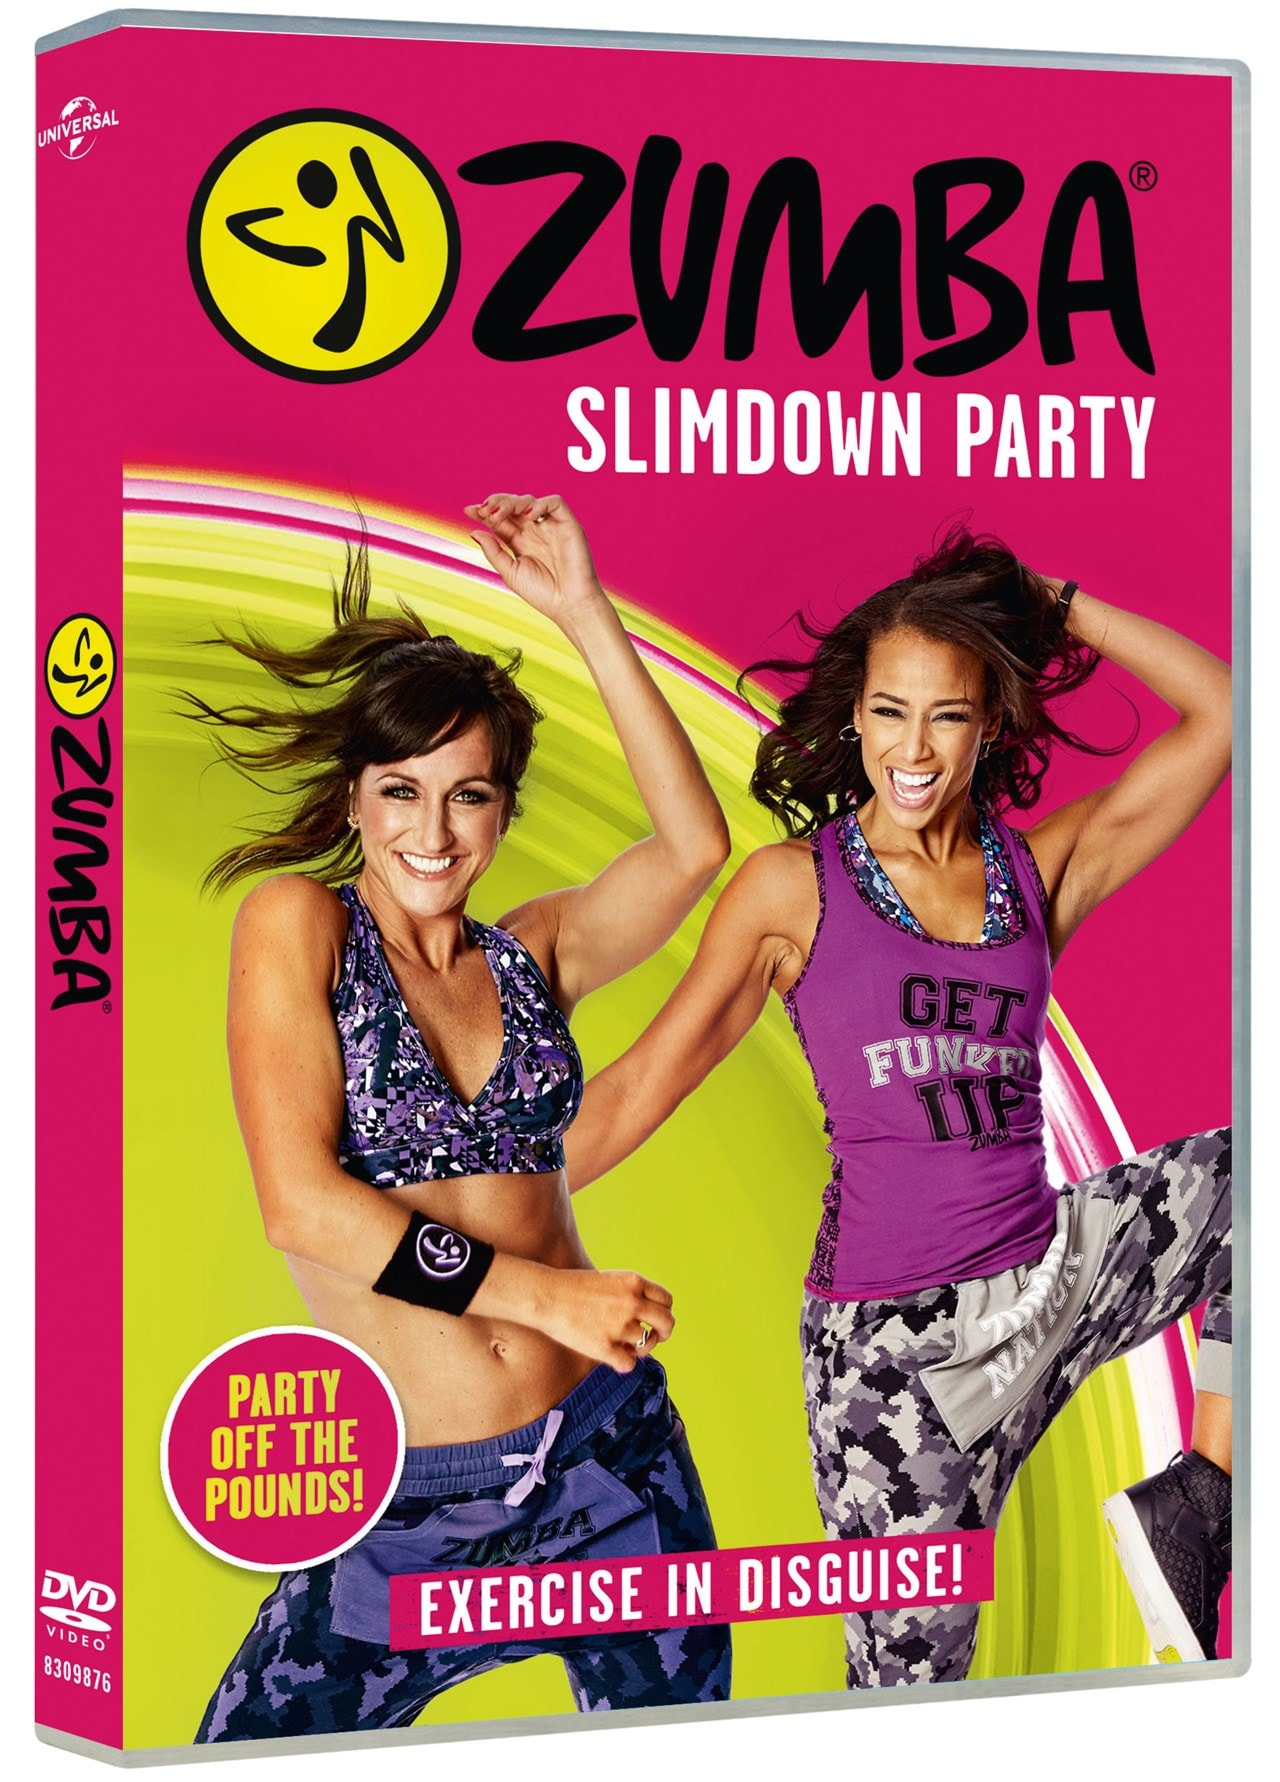 Zumba Slimdown Party - 2